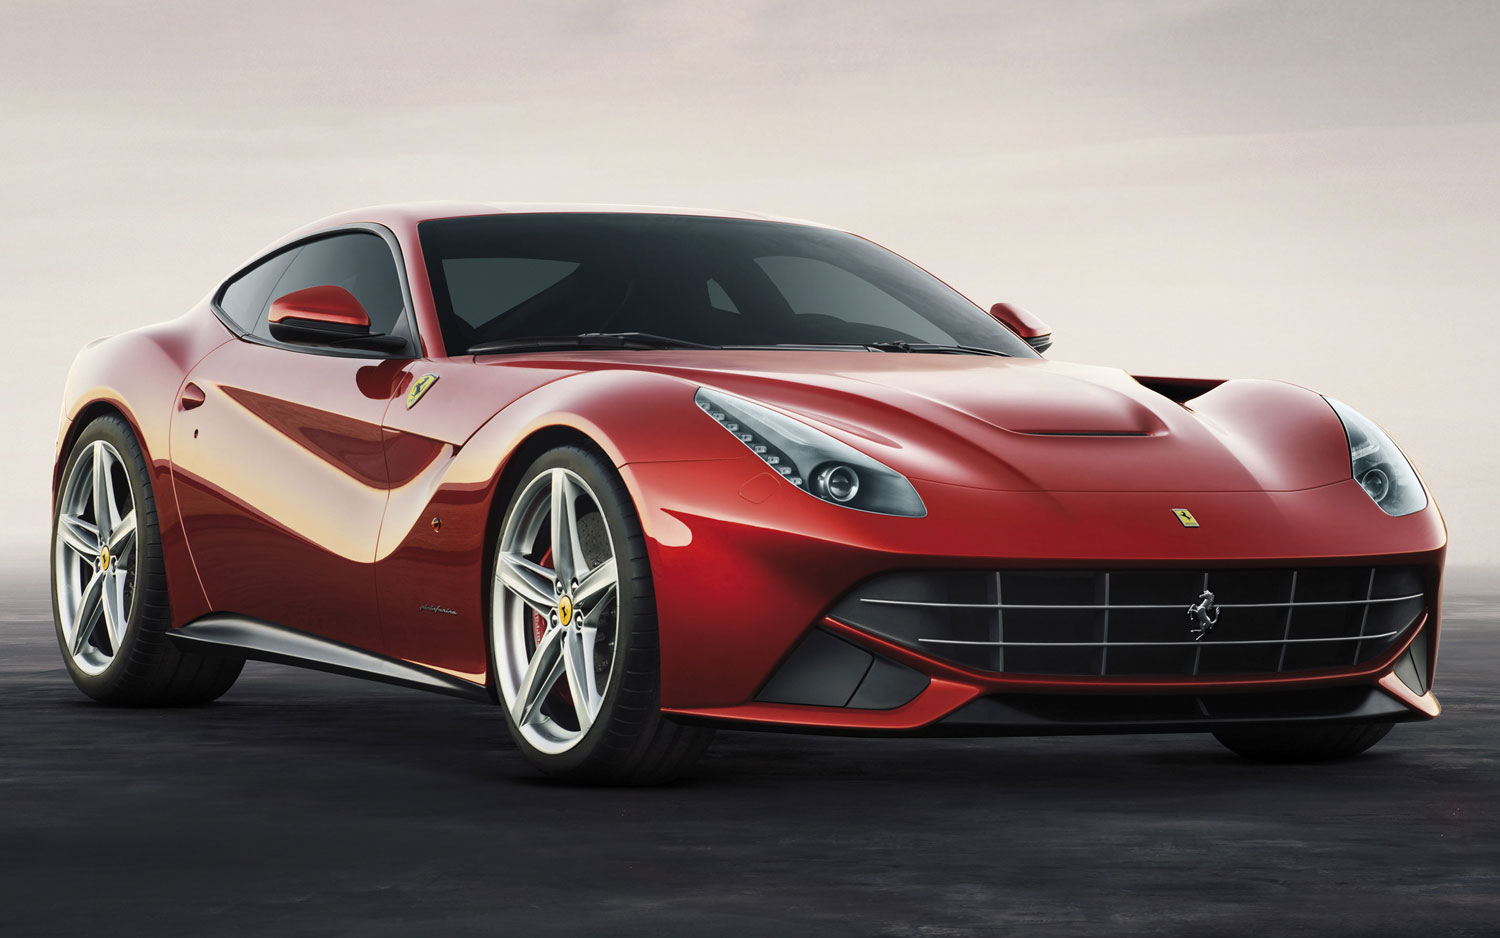 2013 Ferrari F12 Berlinetta Front Three Quarters View1